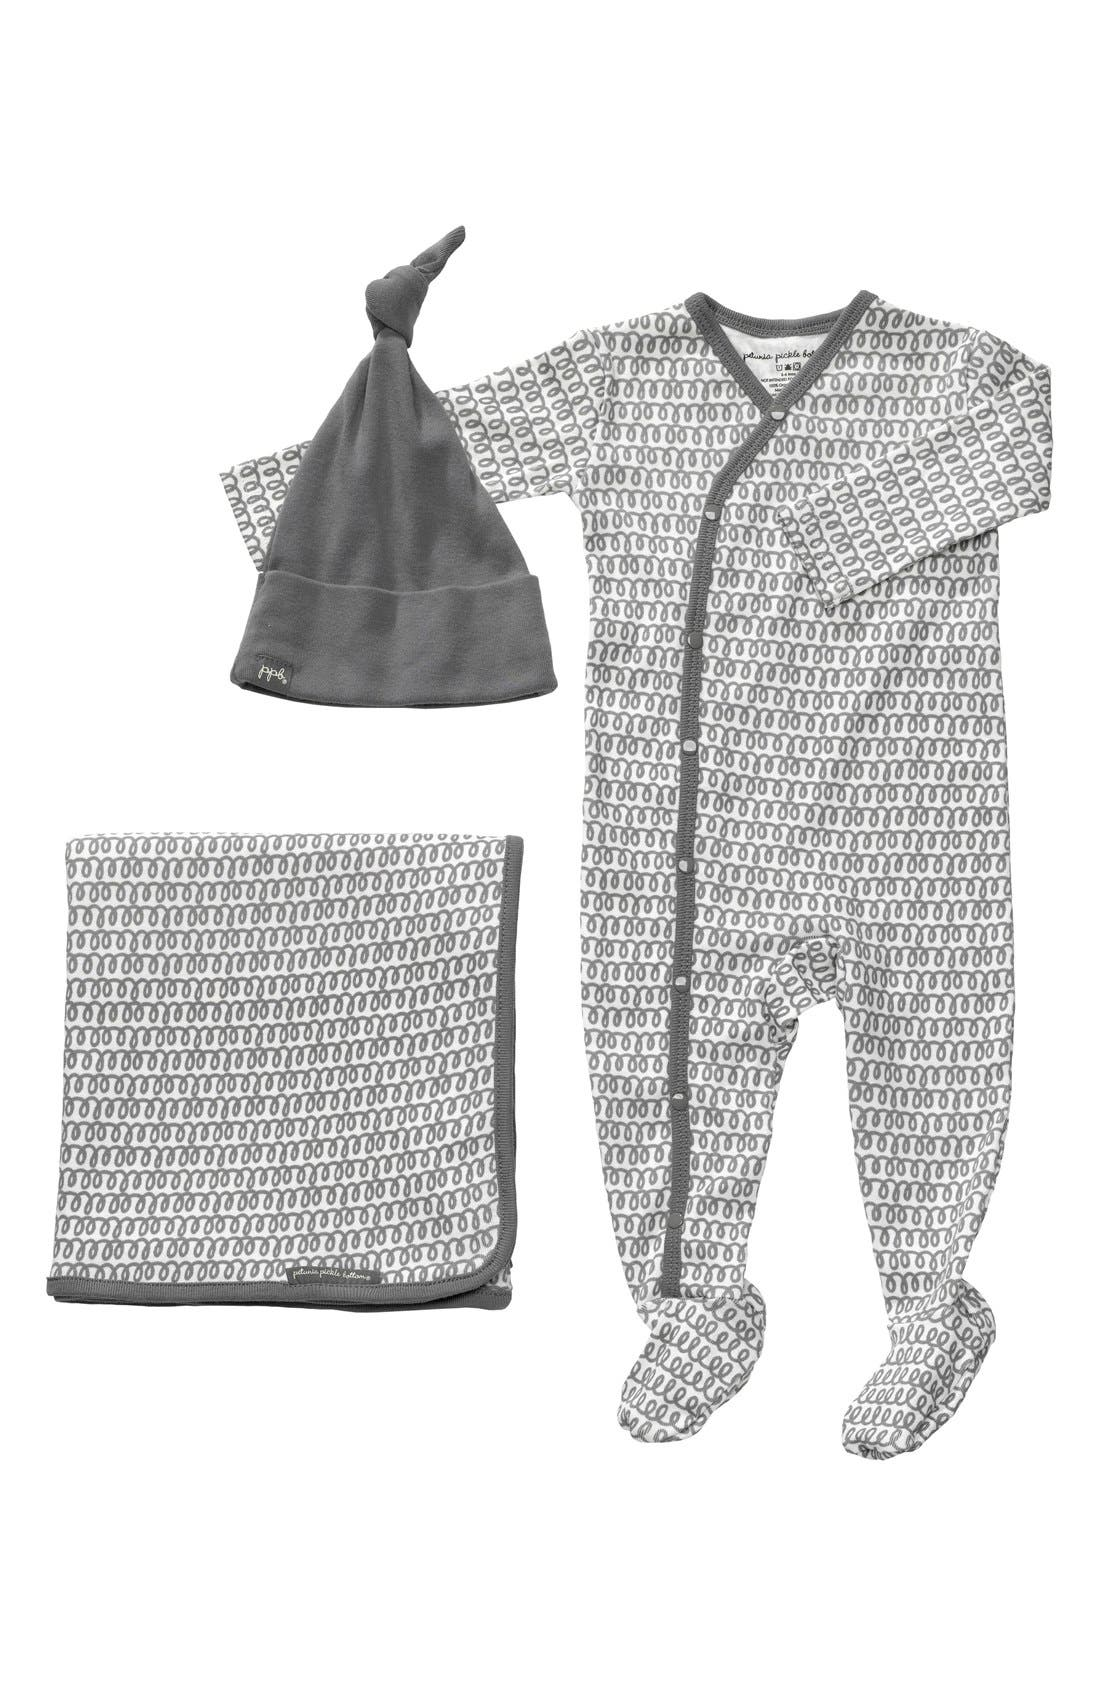 Alternate Image 1 Selected - Petunia Pickle Bottom 'Snuggle' Footie, Blanket & Hat Set (Baby)